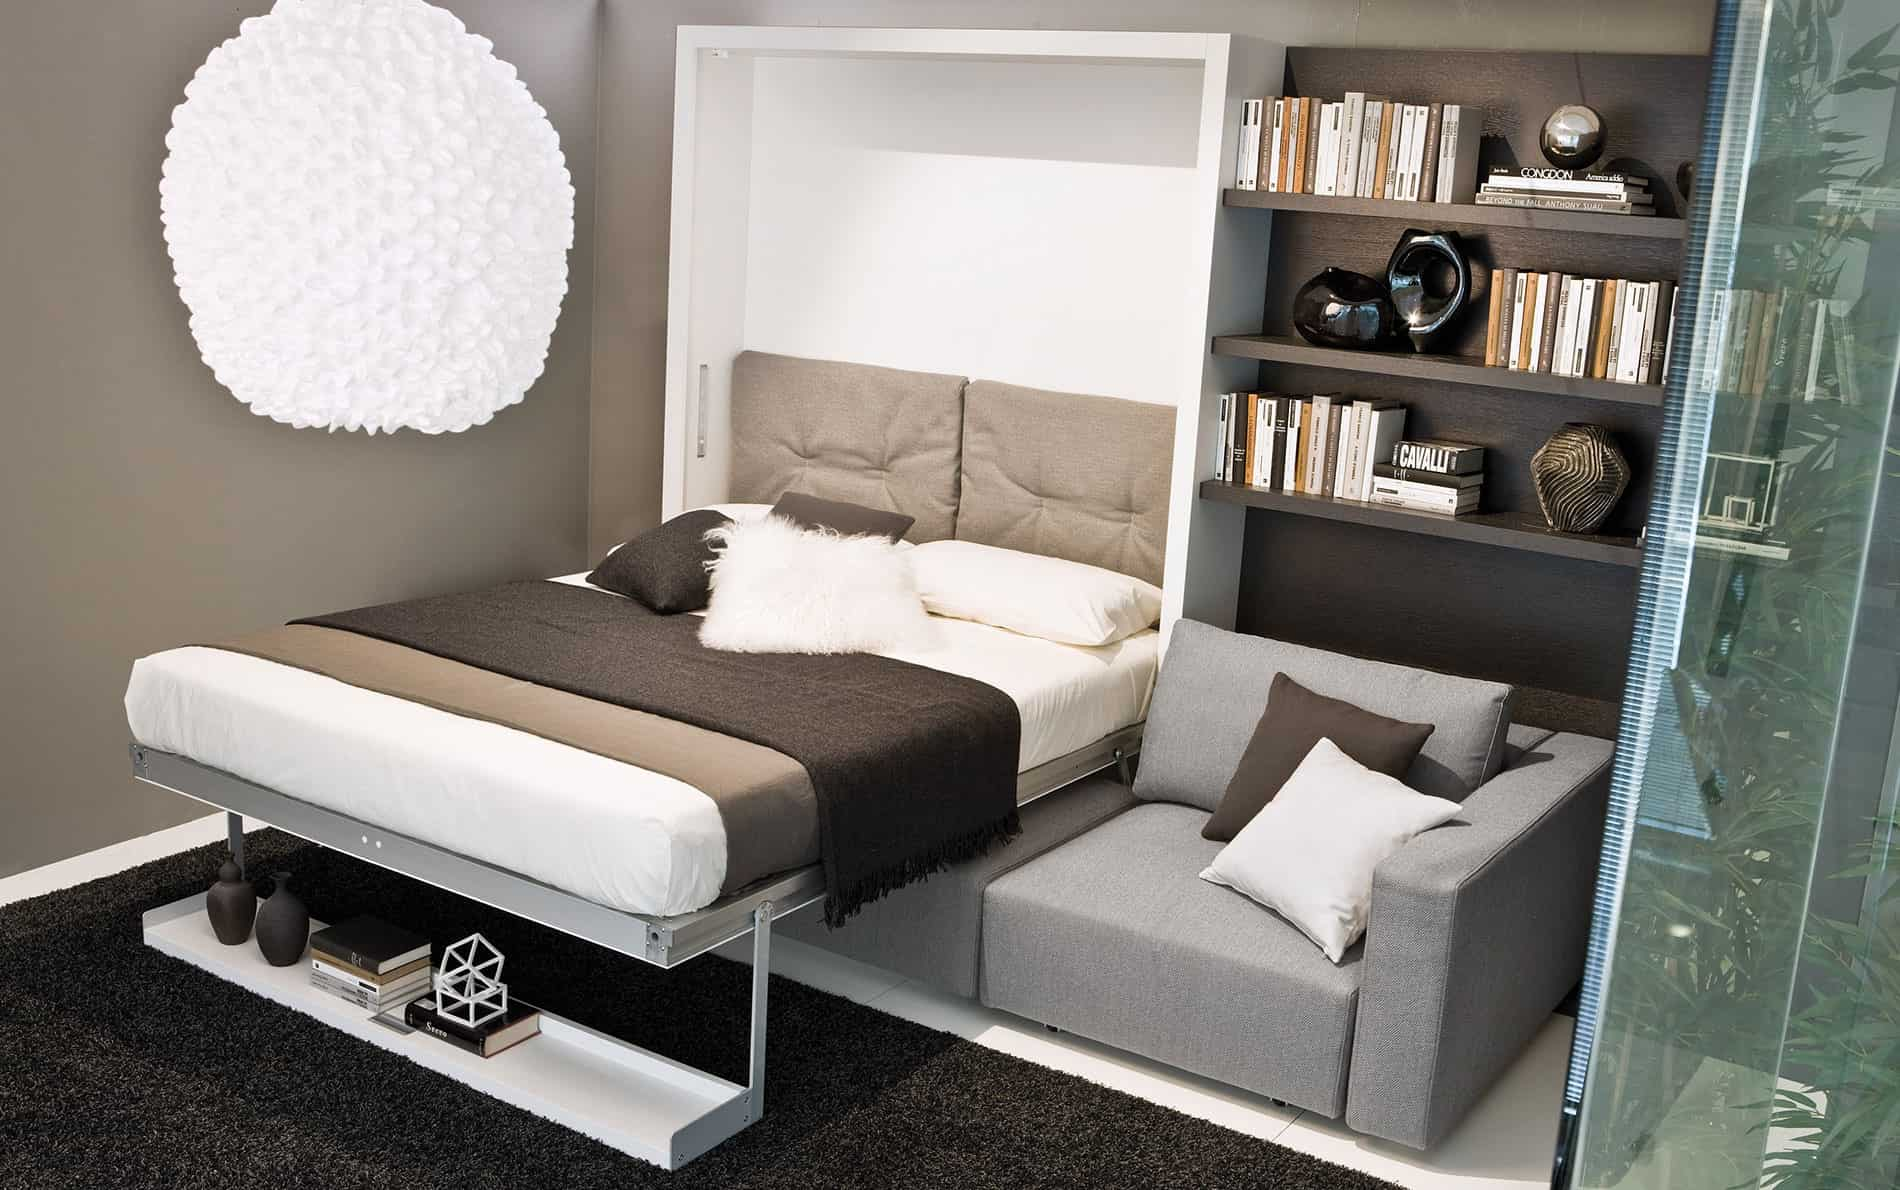 schrankbett mit integriertem sofa elegant schrankwand mit bett stunning schrank bett with. Black Bedroom Furniture Sets. Home Design Ideas